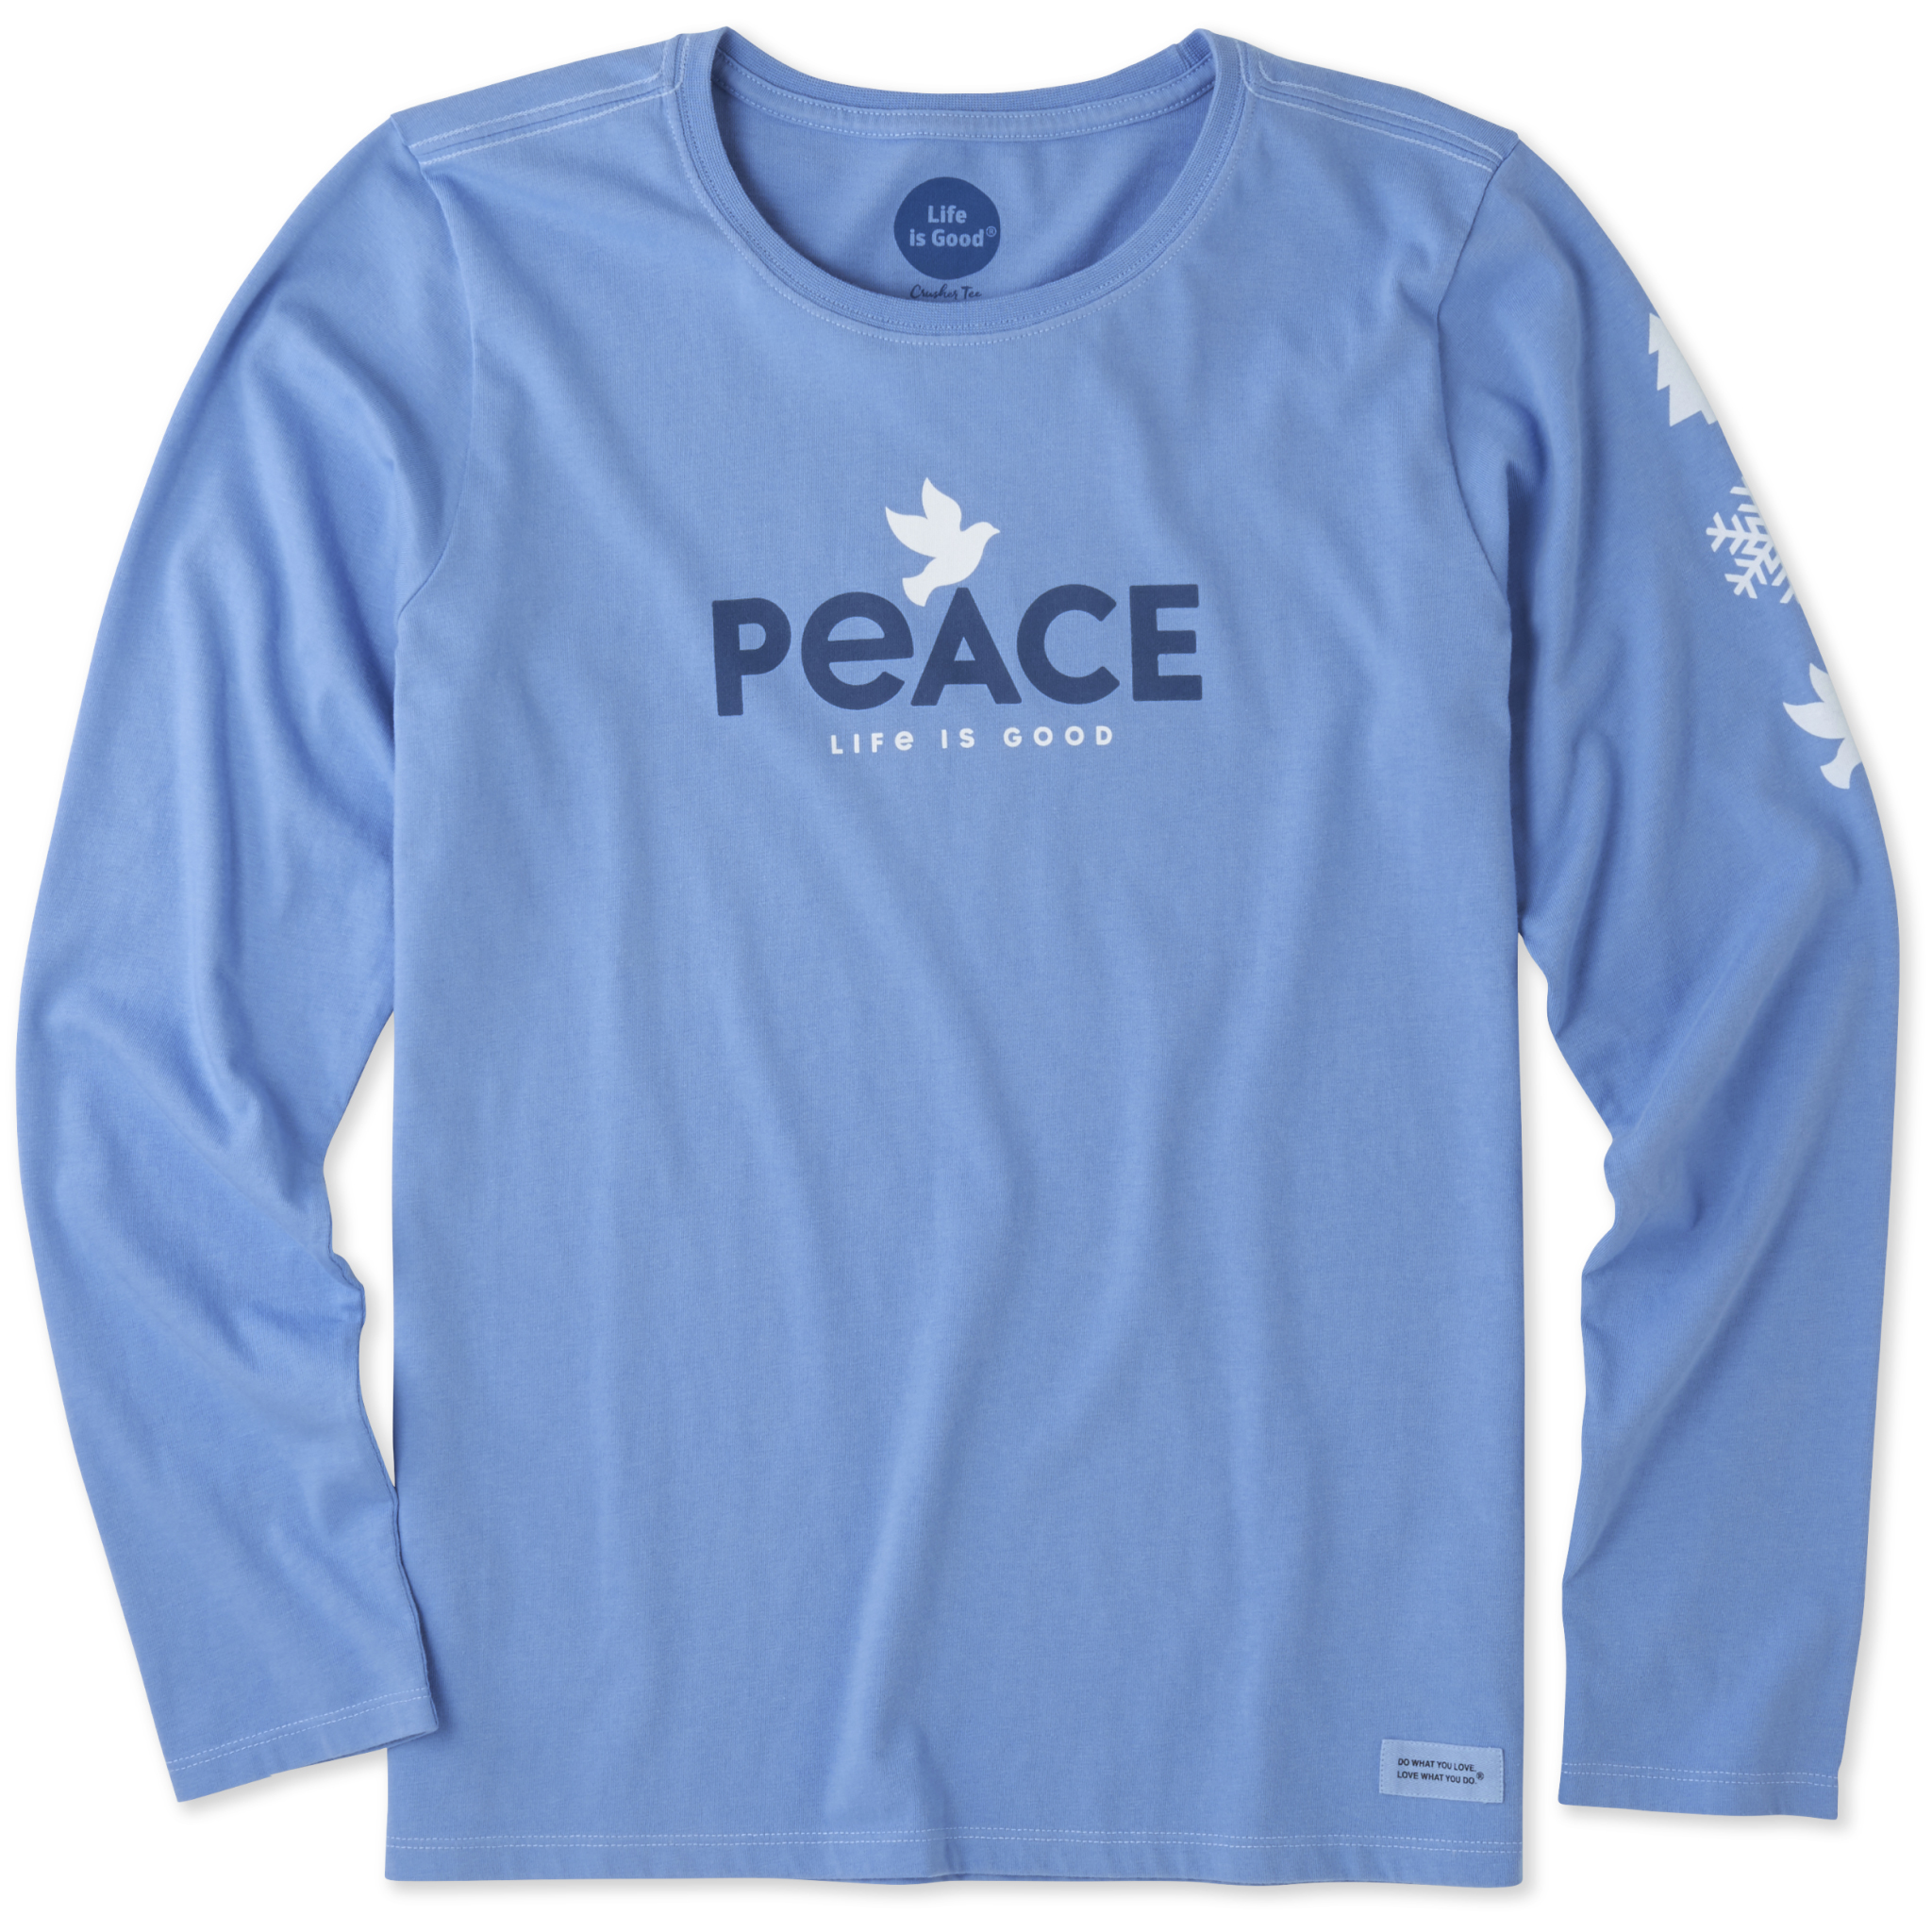 00d7dd8ebbb7a6 Details about Life is Good. Womens Long Sleeve Crusher Vee: Peace Dove,  Powder Blue